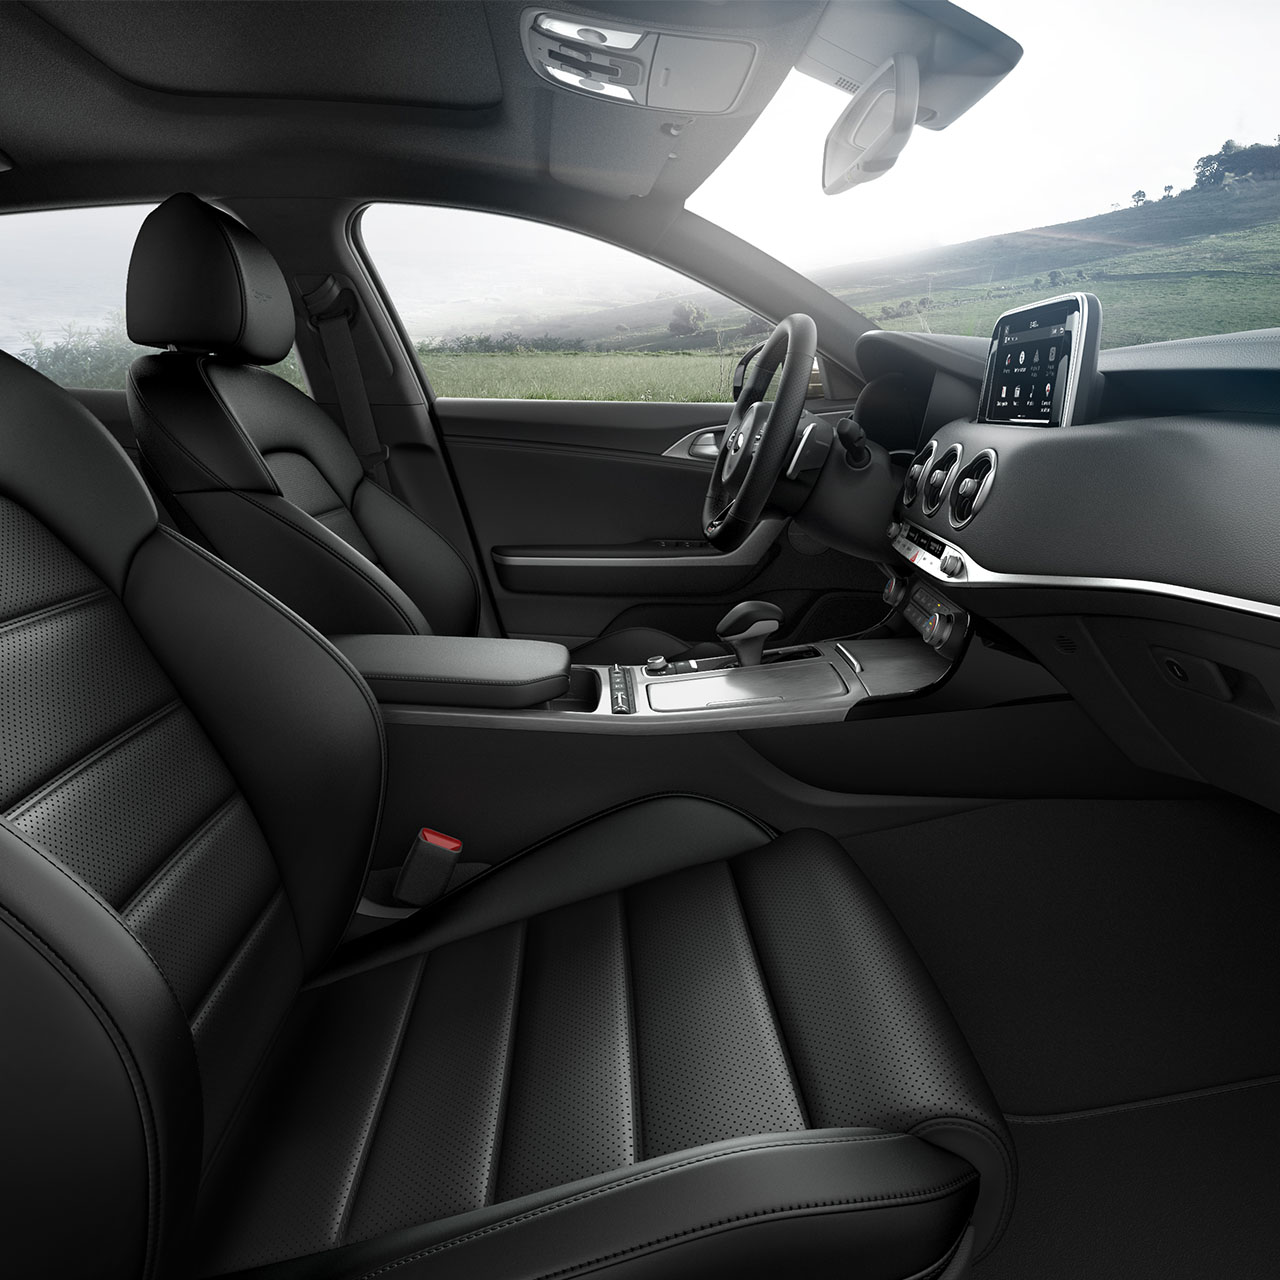 Cozy Seats in the 2019 Stinger